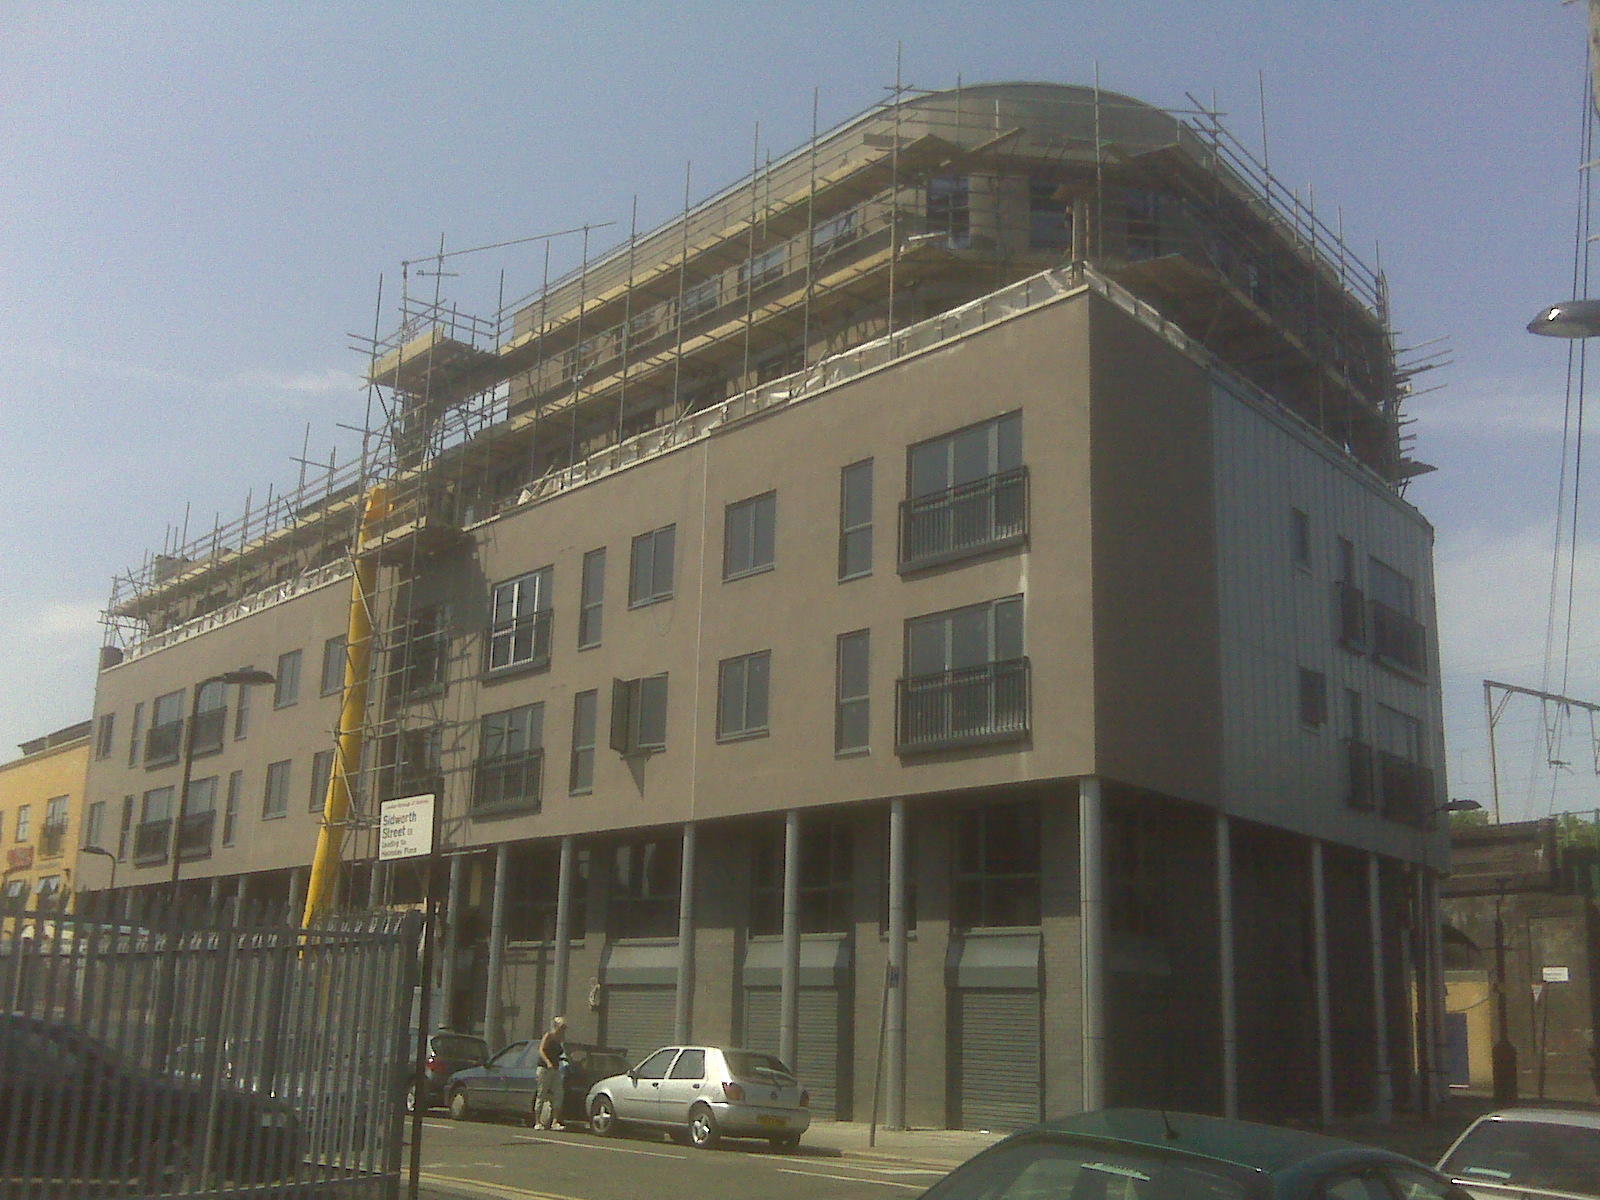 Sidworth Street Mixed-use Development